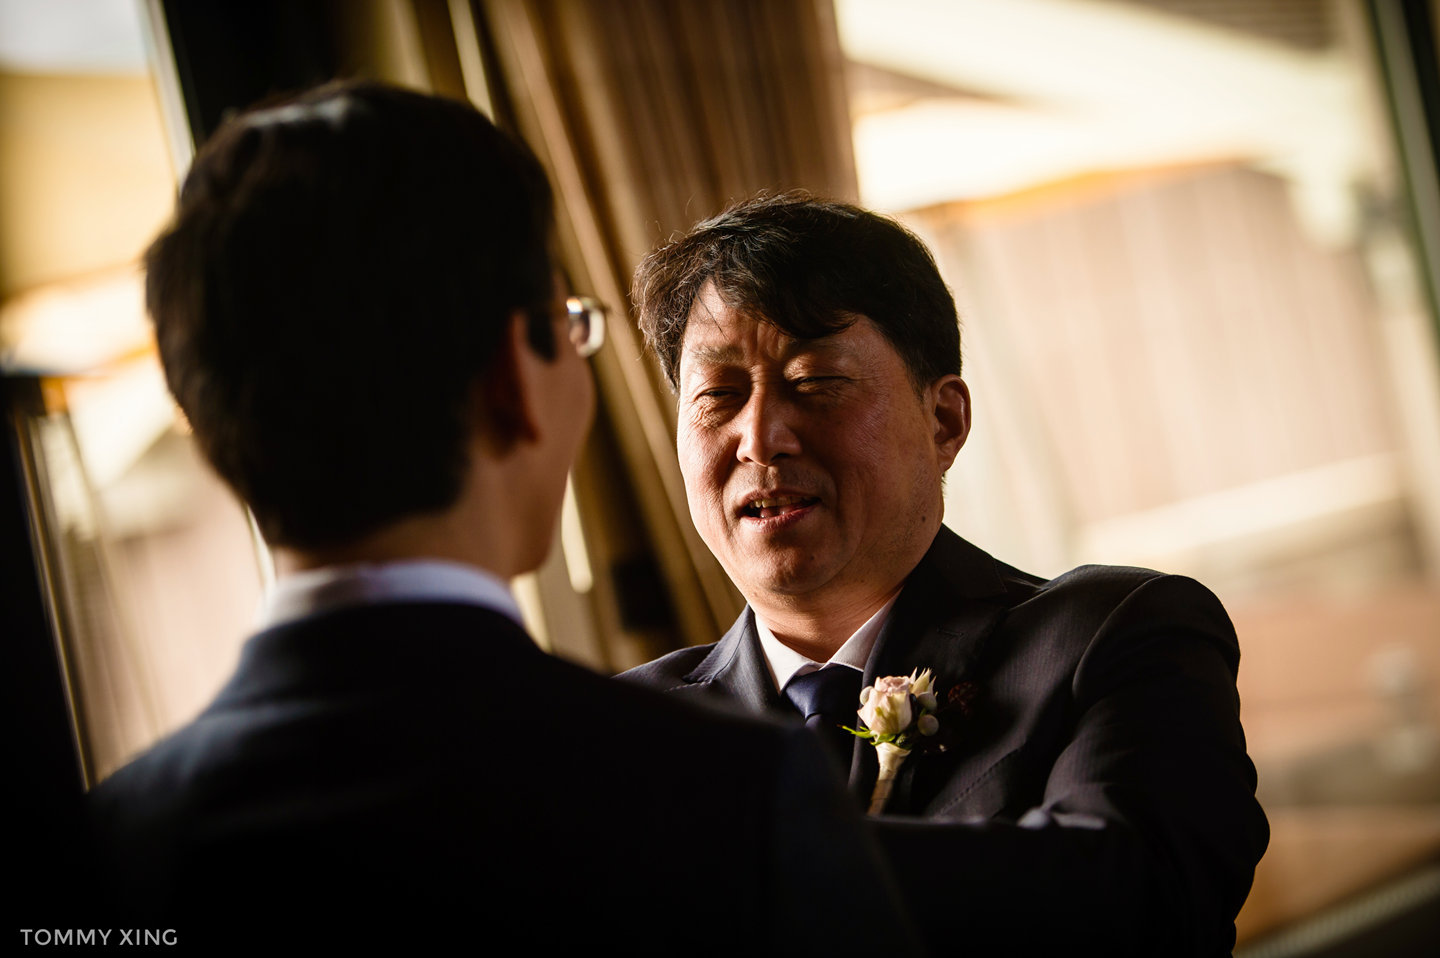 San Francisco Wedding Photography Valley Presbyterian Church WEDDING Tommy Xing Photography 洛杉矶旧金山婚礼婚纱照摄影师014.jpg